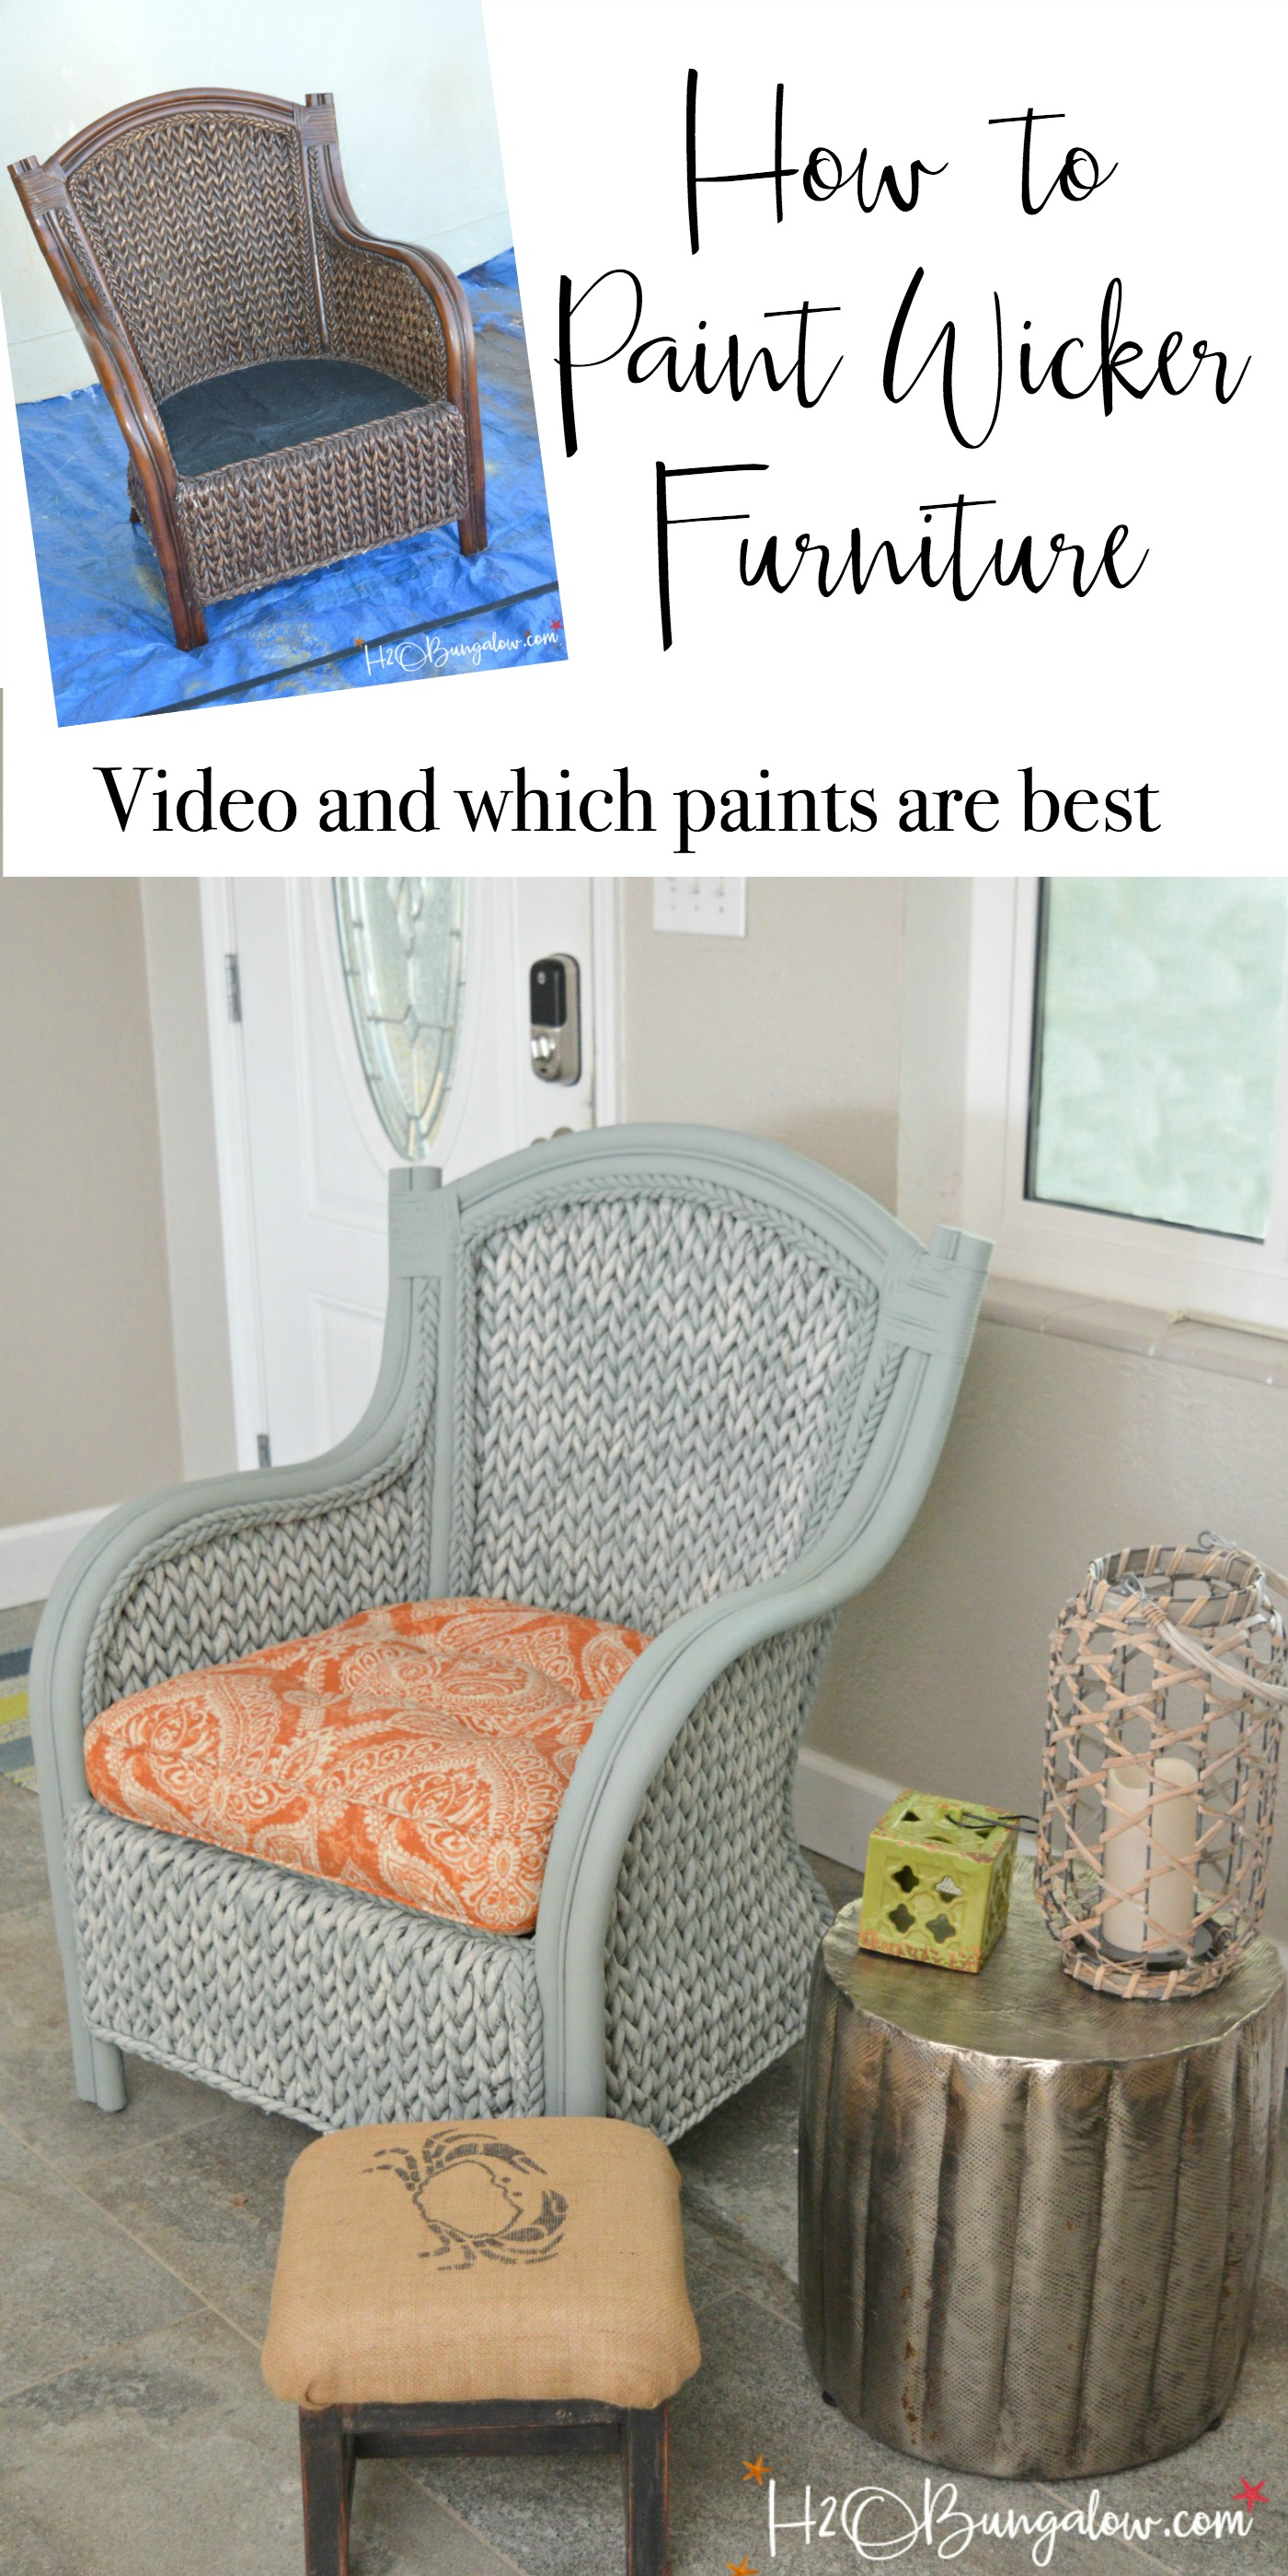 How to paint wicker furniture with a paint sprayer. Tutorial and video shows how to paint a wicker chair with what paints to use on wicker for best results. Find over 450 DIY tutorials on H2OBungalow.com